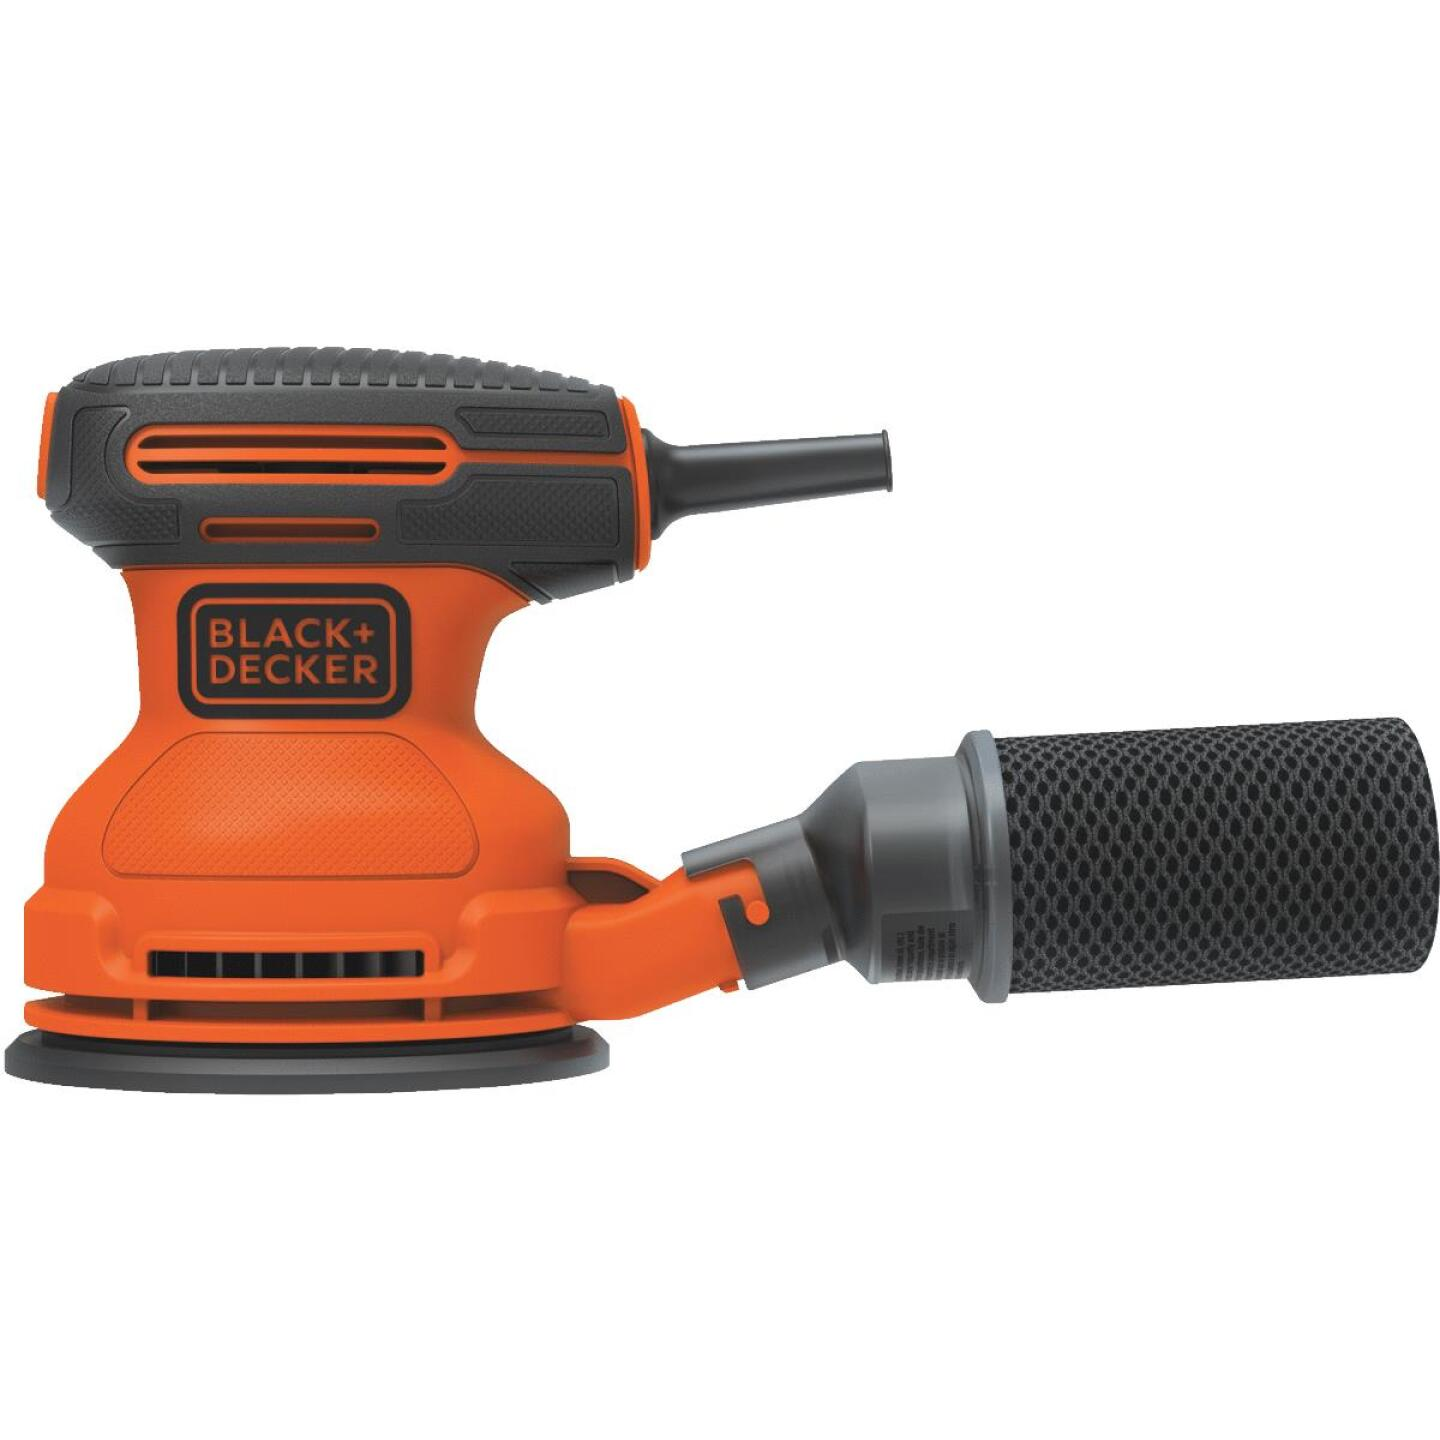 Black & Decker 5 In. 2.0A Random Orbit Finish Sander Image 4